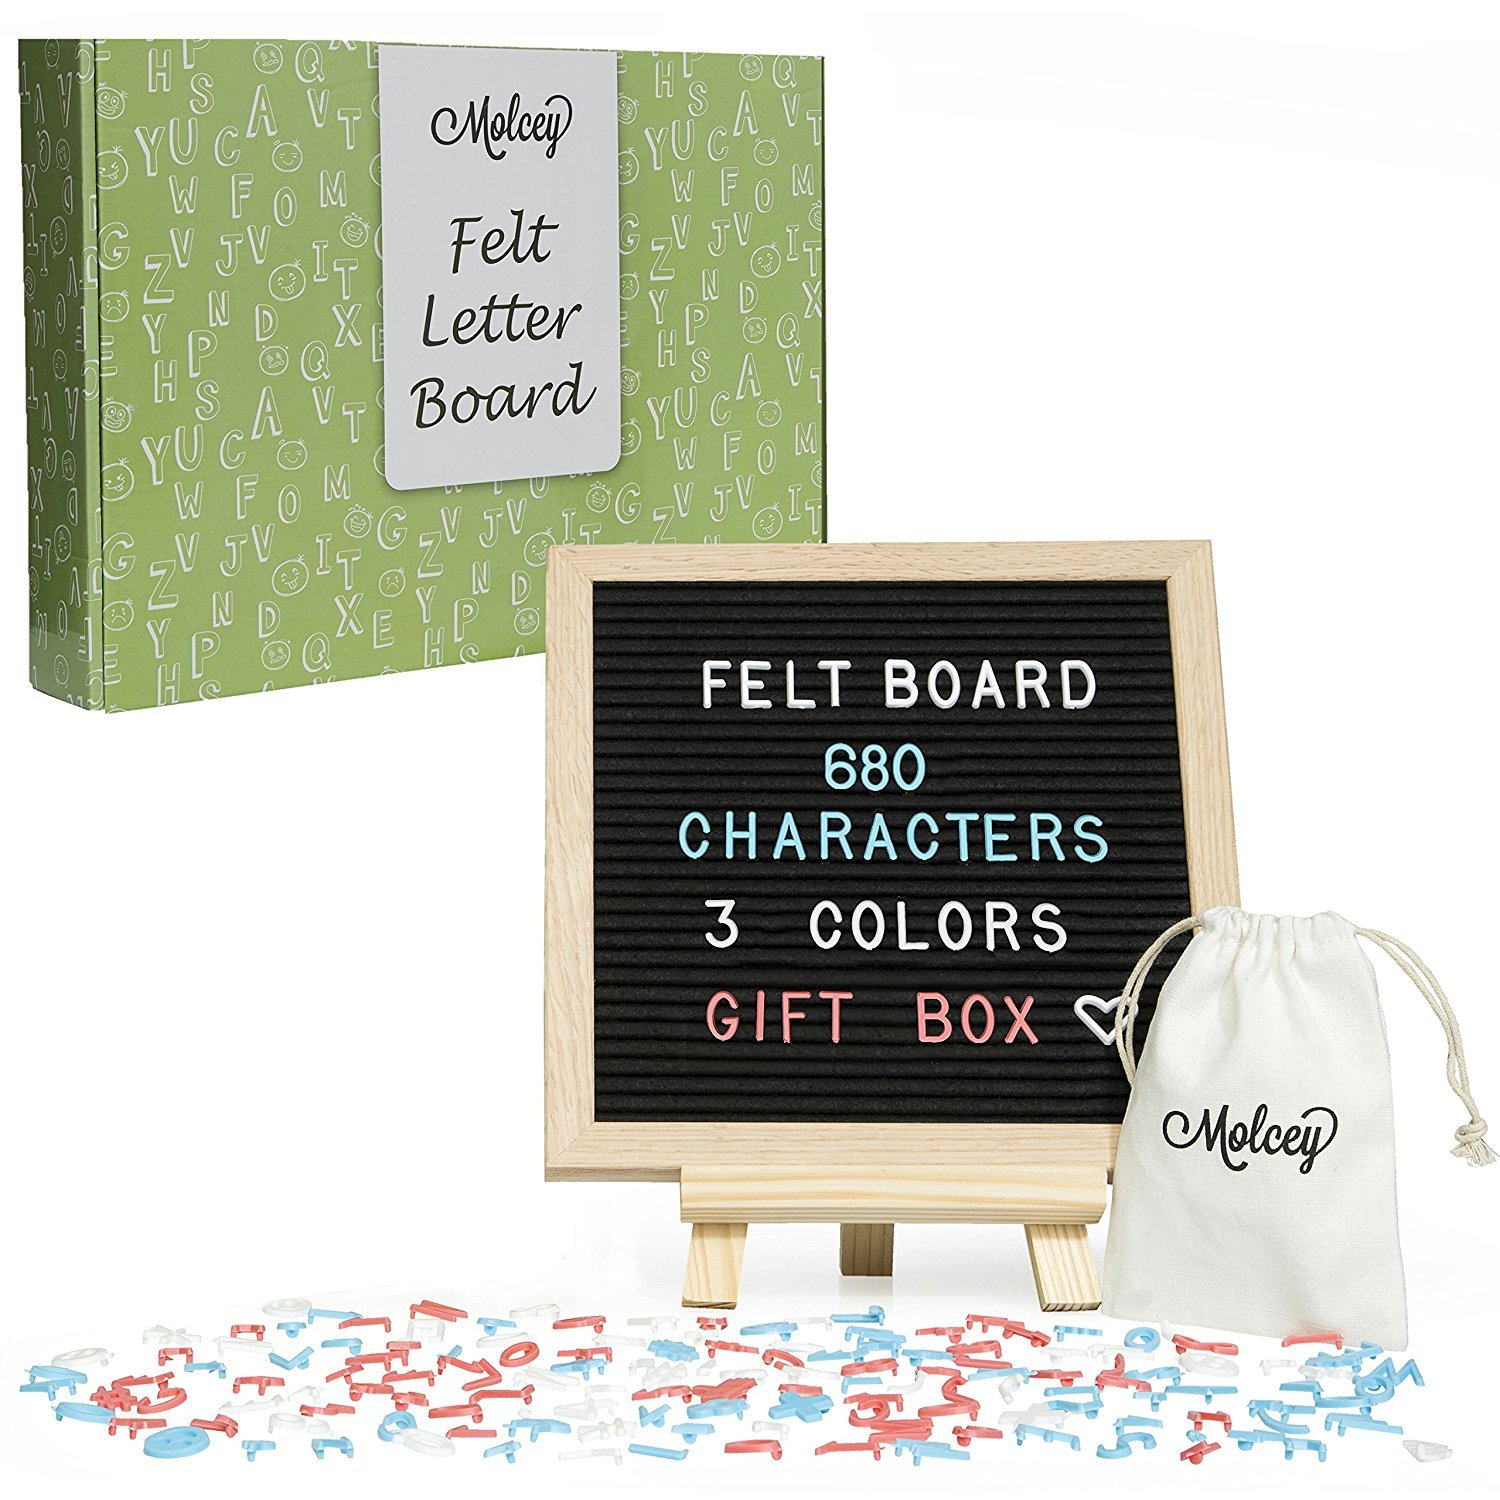 Black Felt Letter Board - Changeable Sign for Messages, Quotes & Baby Announcement Board | 10x10 Inch Oak Frame | 680 Characters - Letters, Emojis, White, Blue, Pink | Letter Boards with Stand